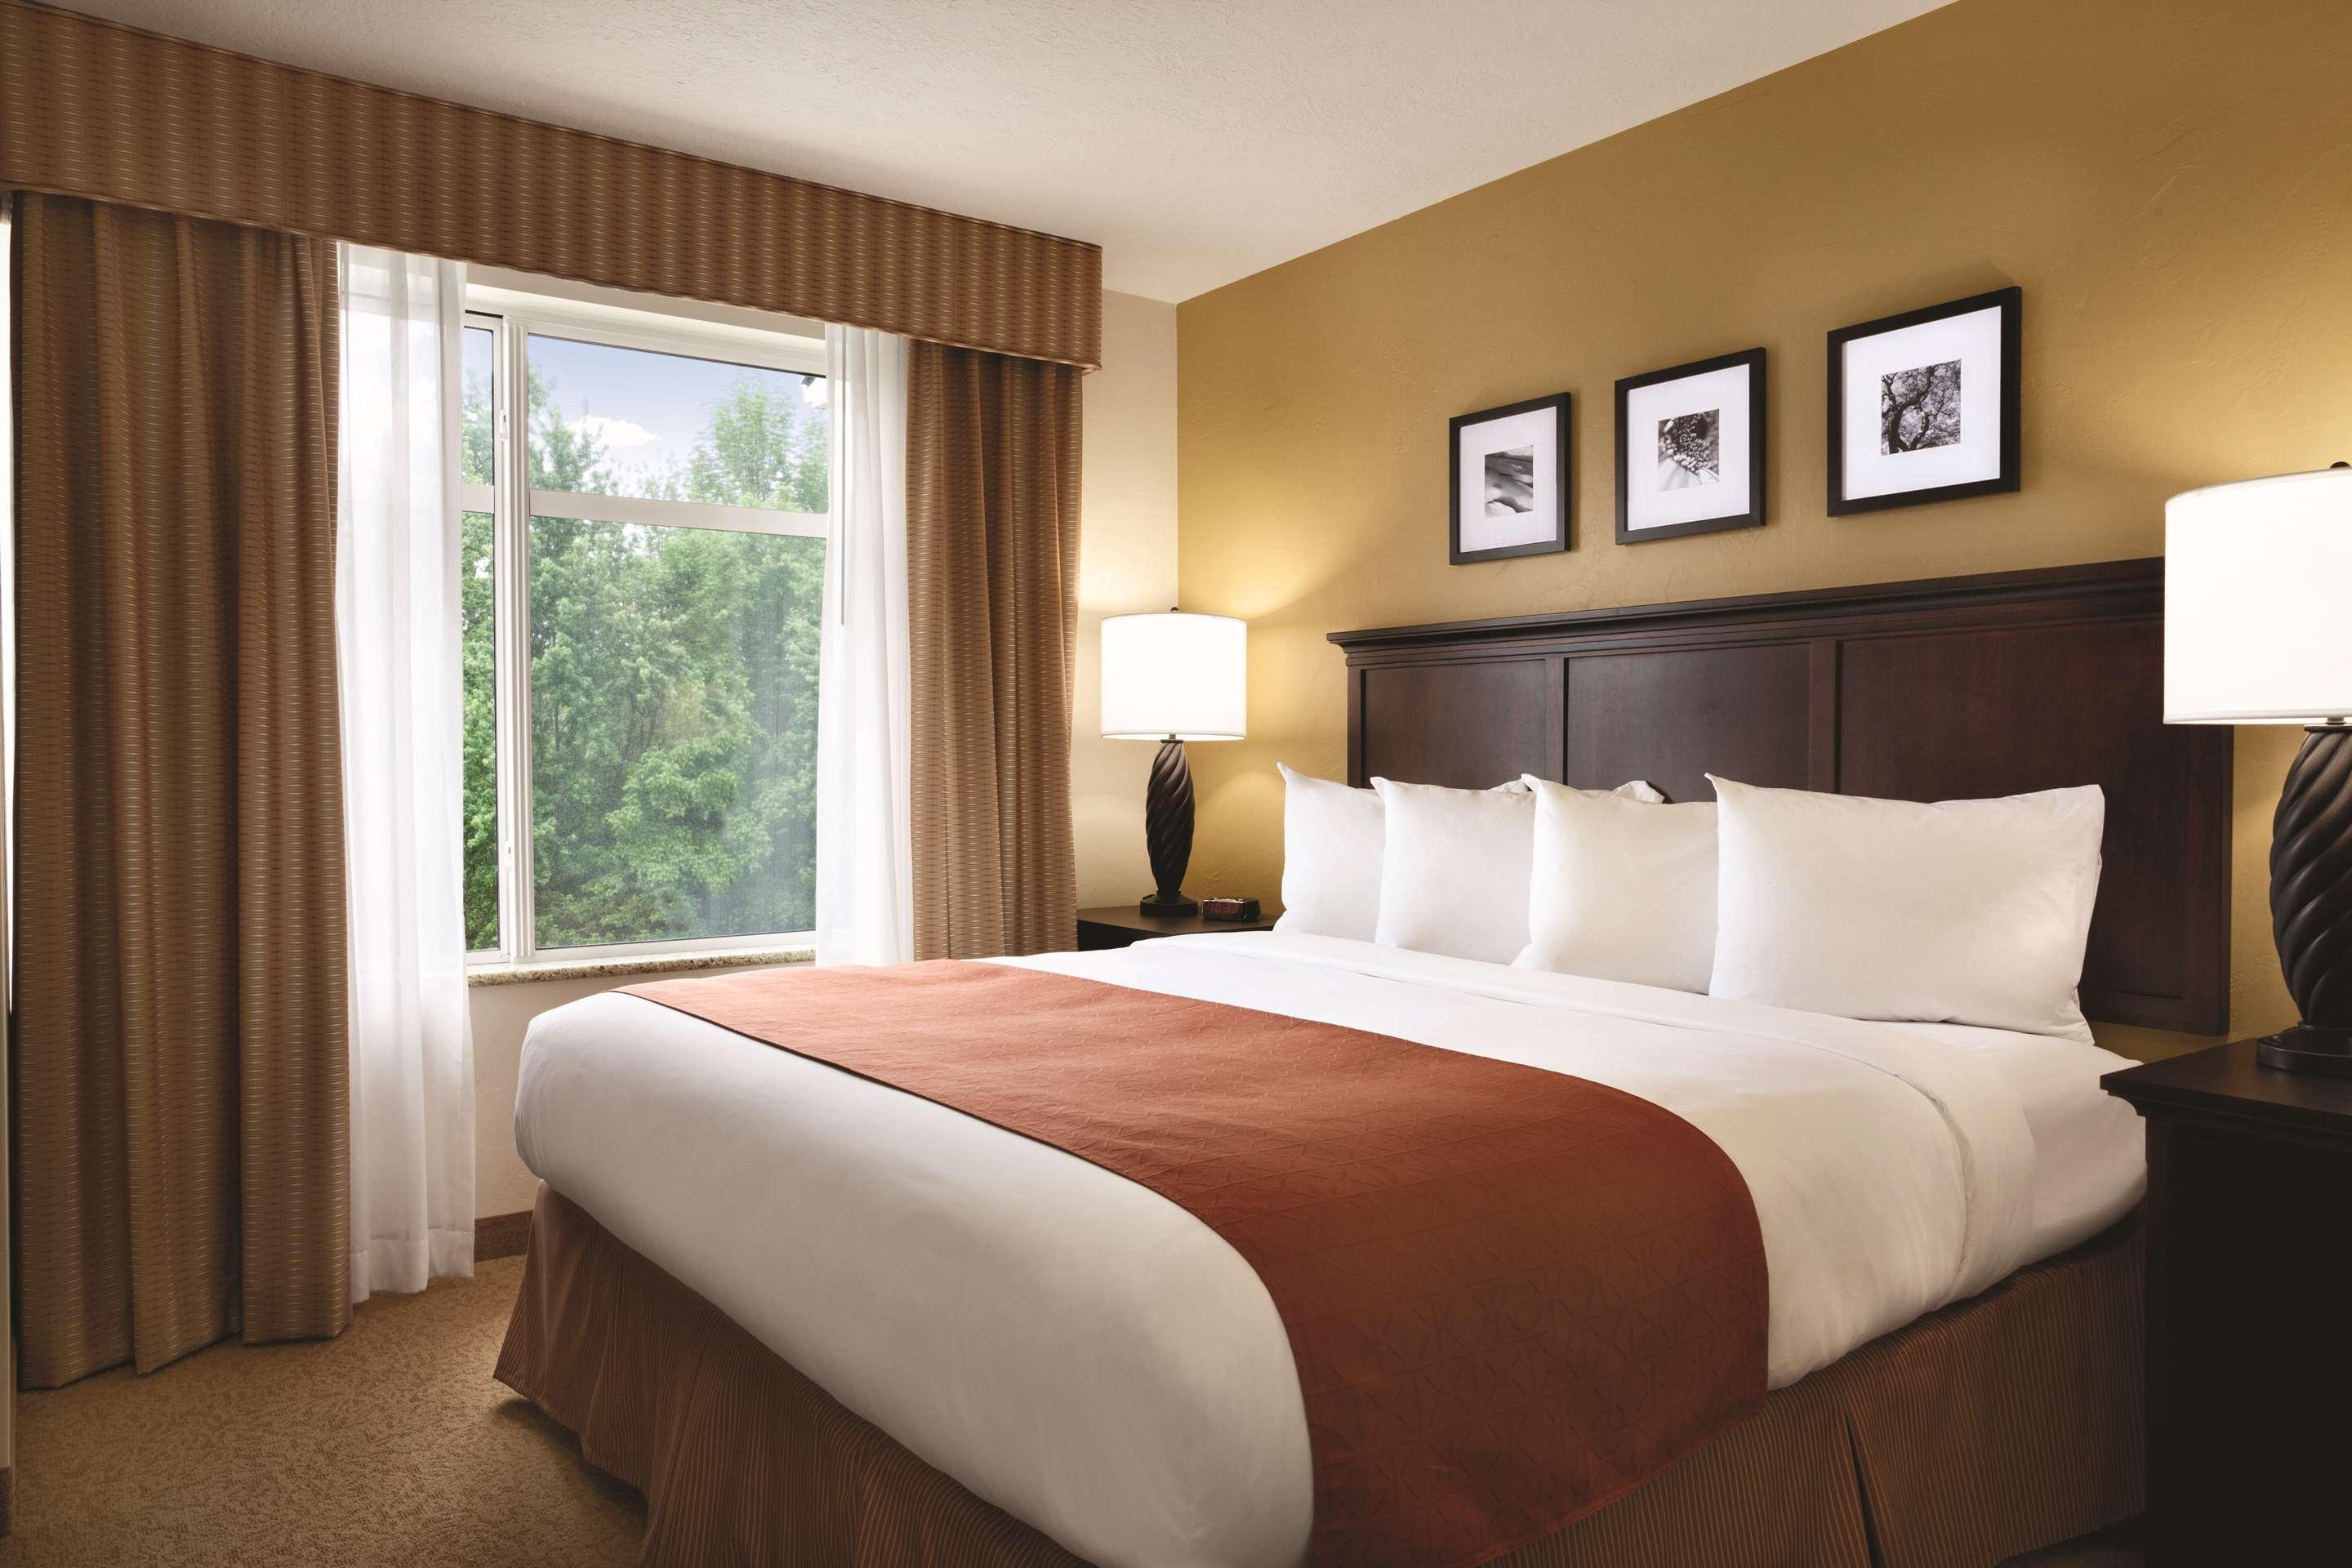 Country Inn & Suites Knoxville West at Cedar Bluff